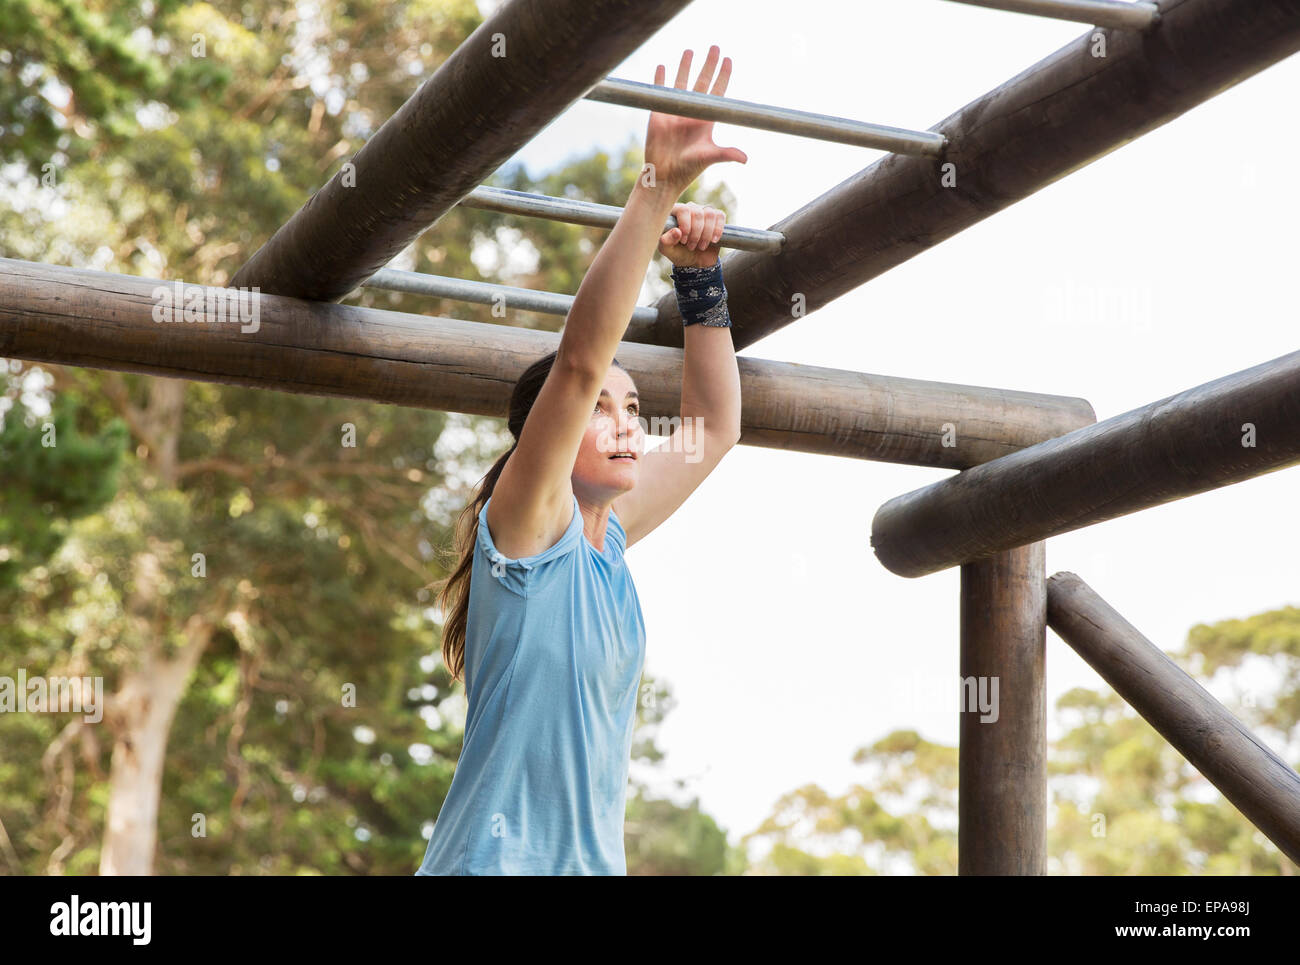 woman monkey bars boot camp obstacle course - Stock Image